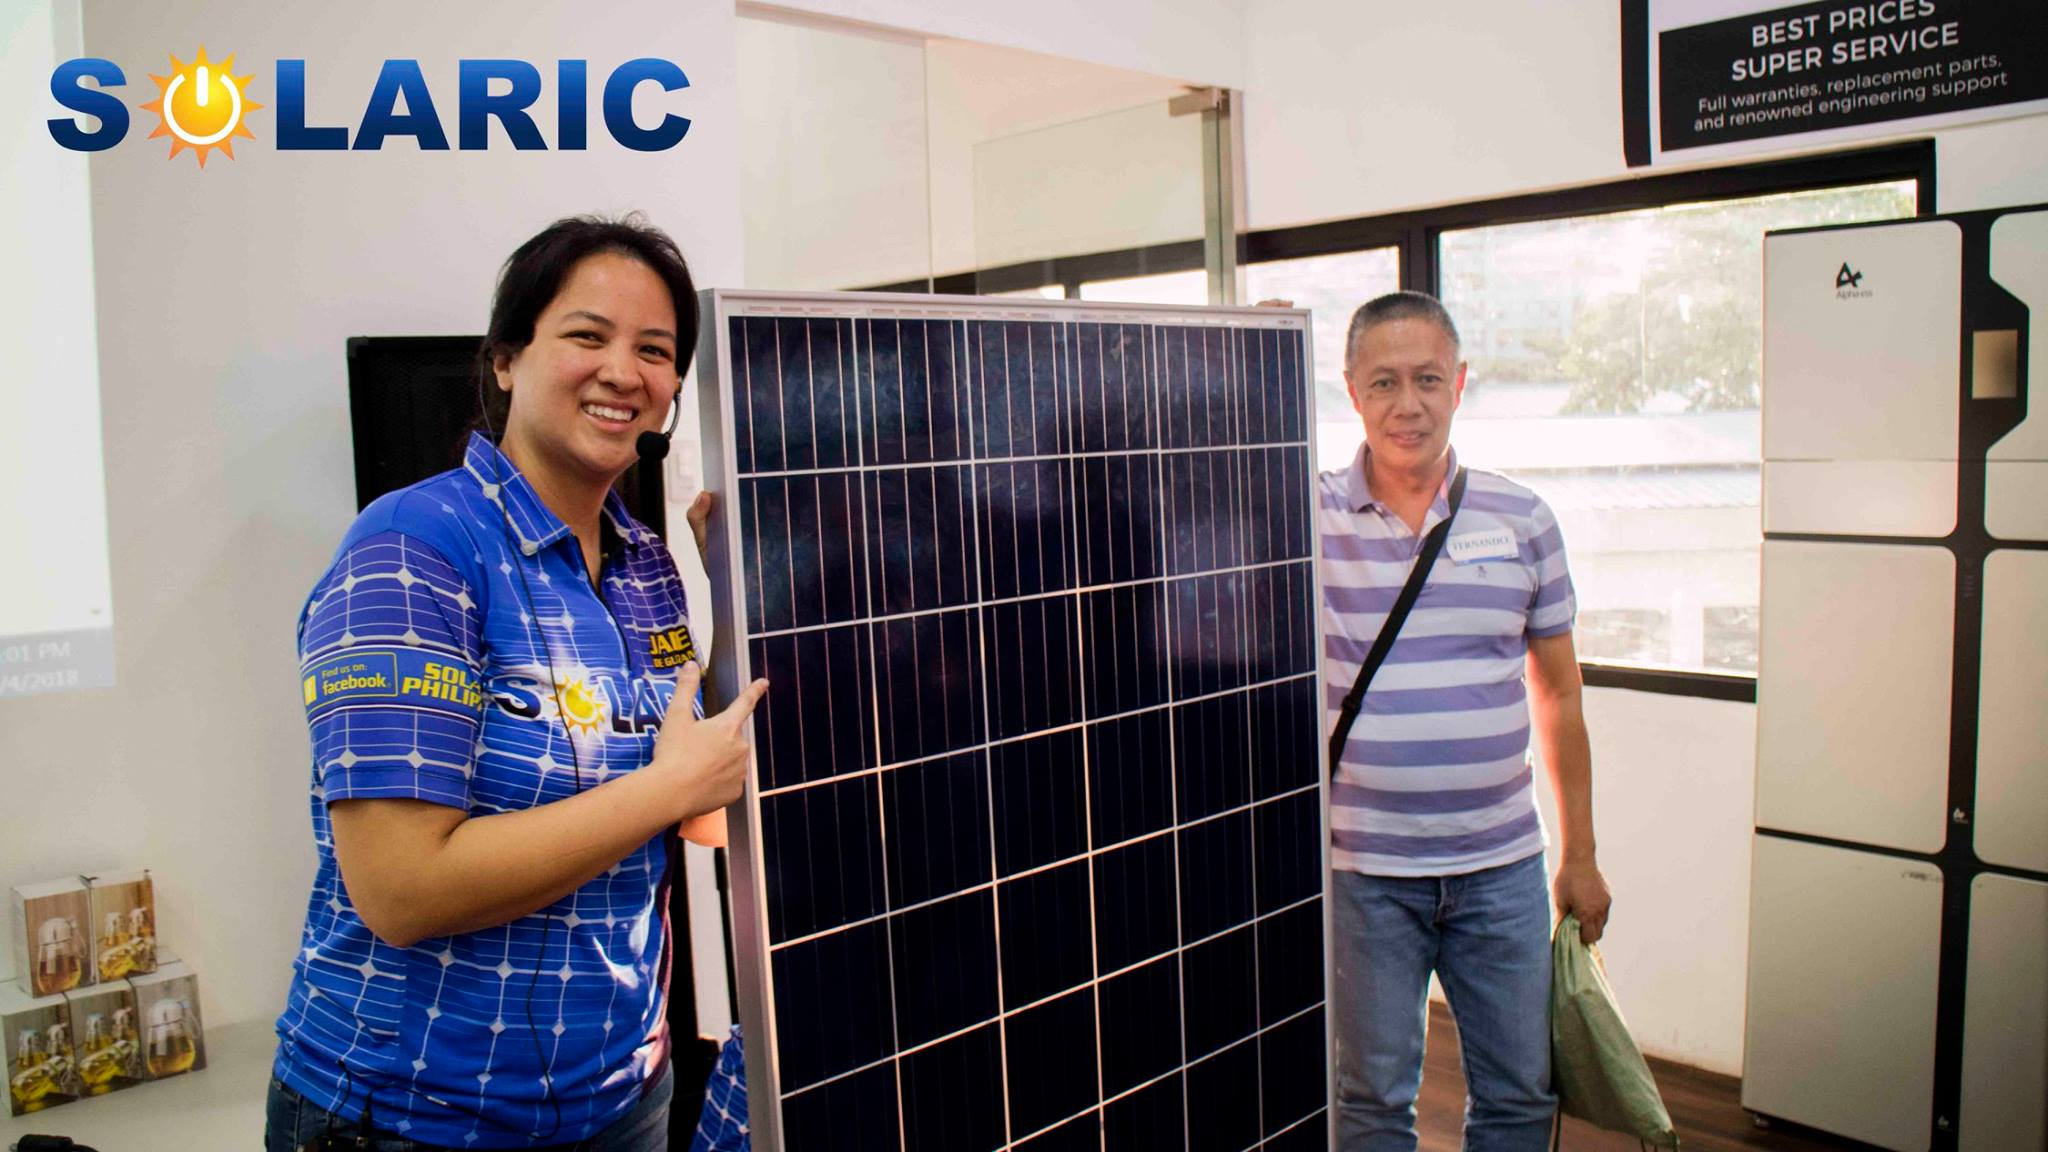 THE ENERGY REVOLUTION: THE SOLAR LIFESTYLE IS NOW OVERTAKING THE PHILIPPINES